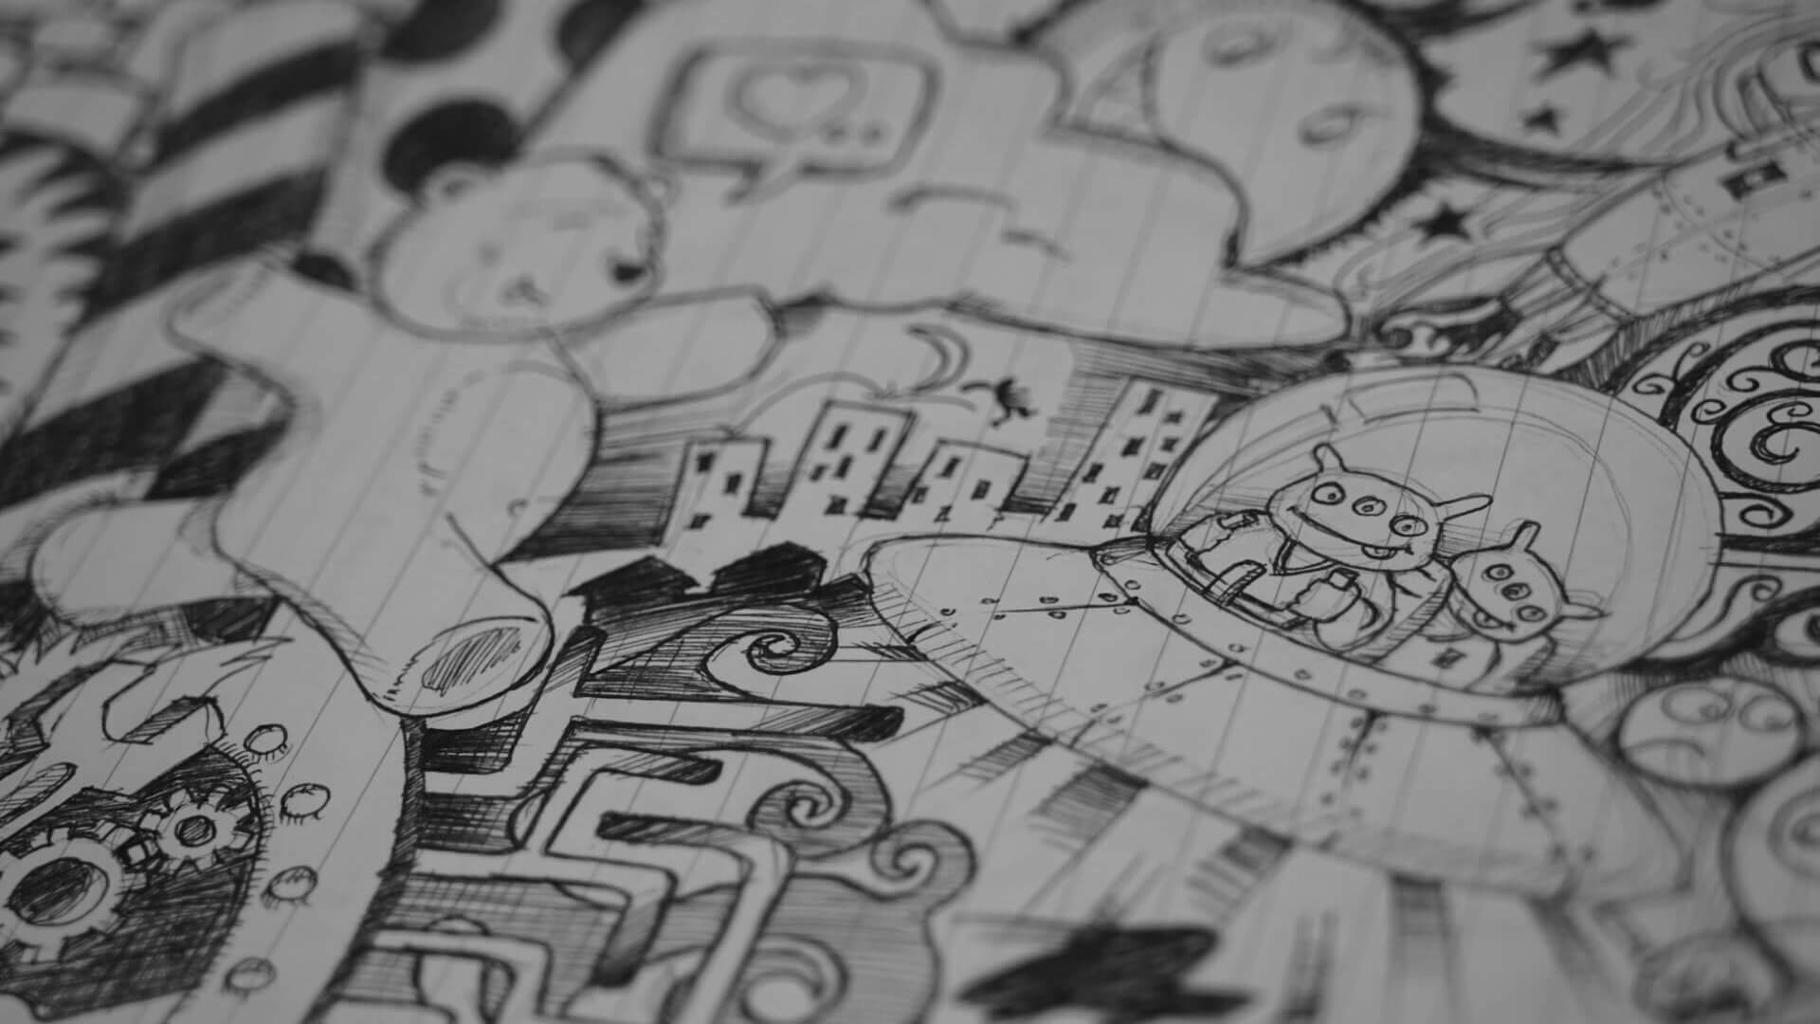 Comic Art Sketch. Photo by Khairul Nizam from Pexels.